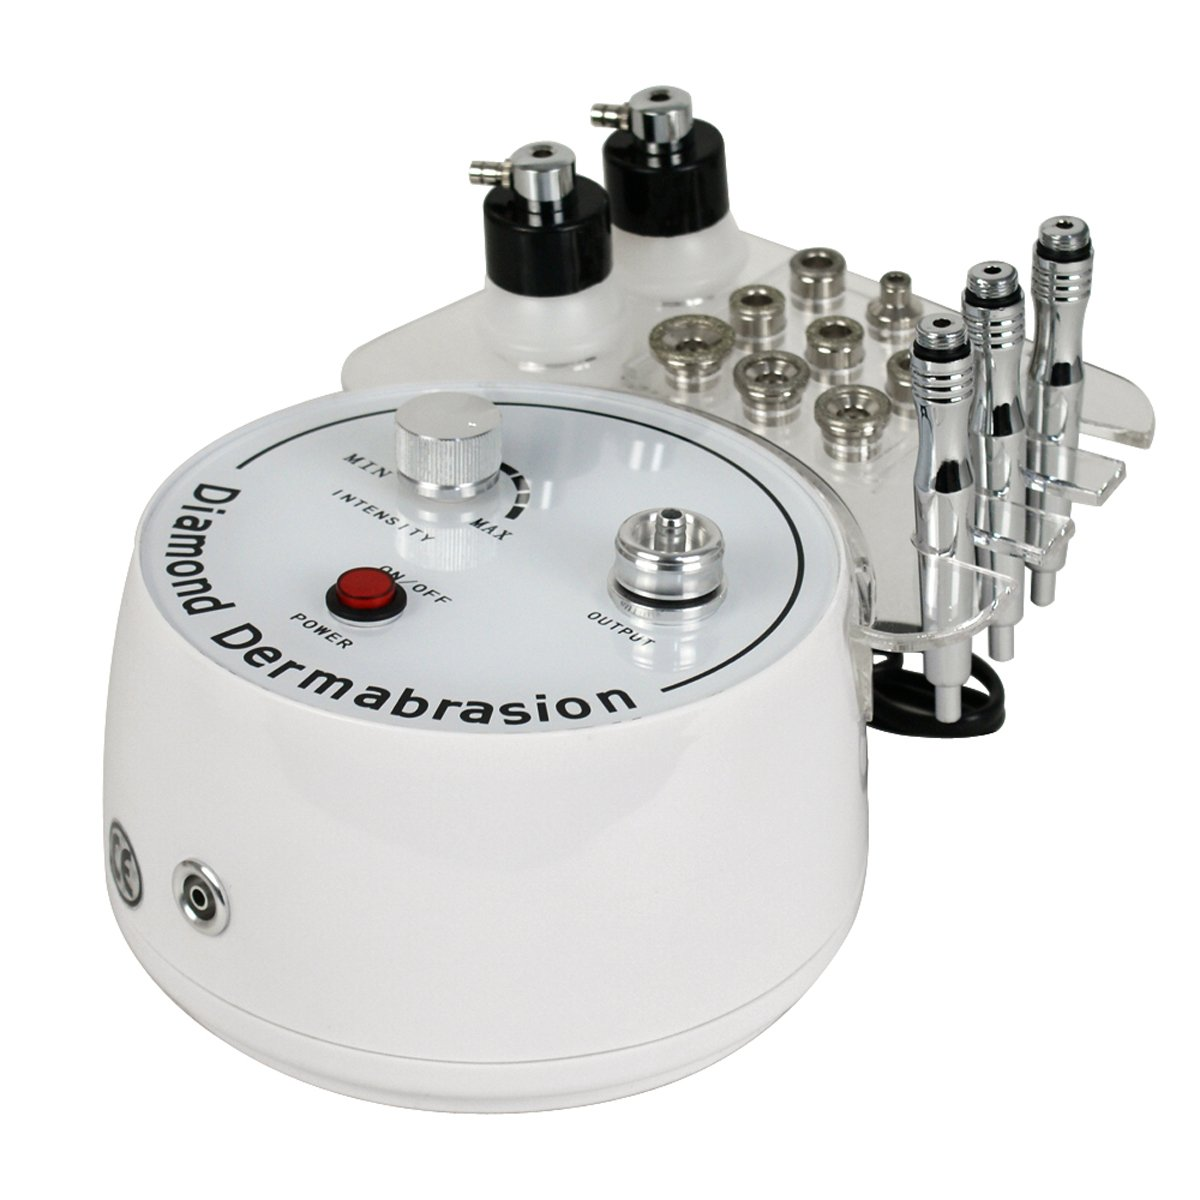 kendal microdermabrasion machine instructions